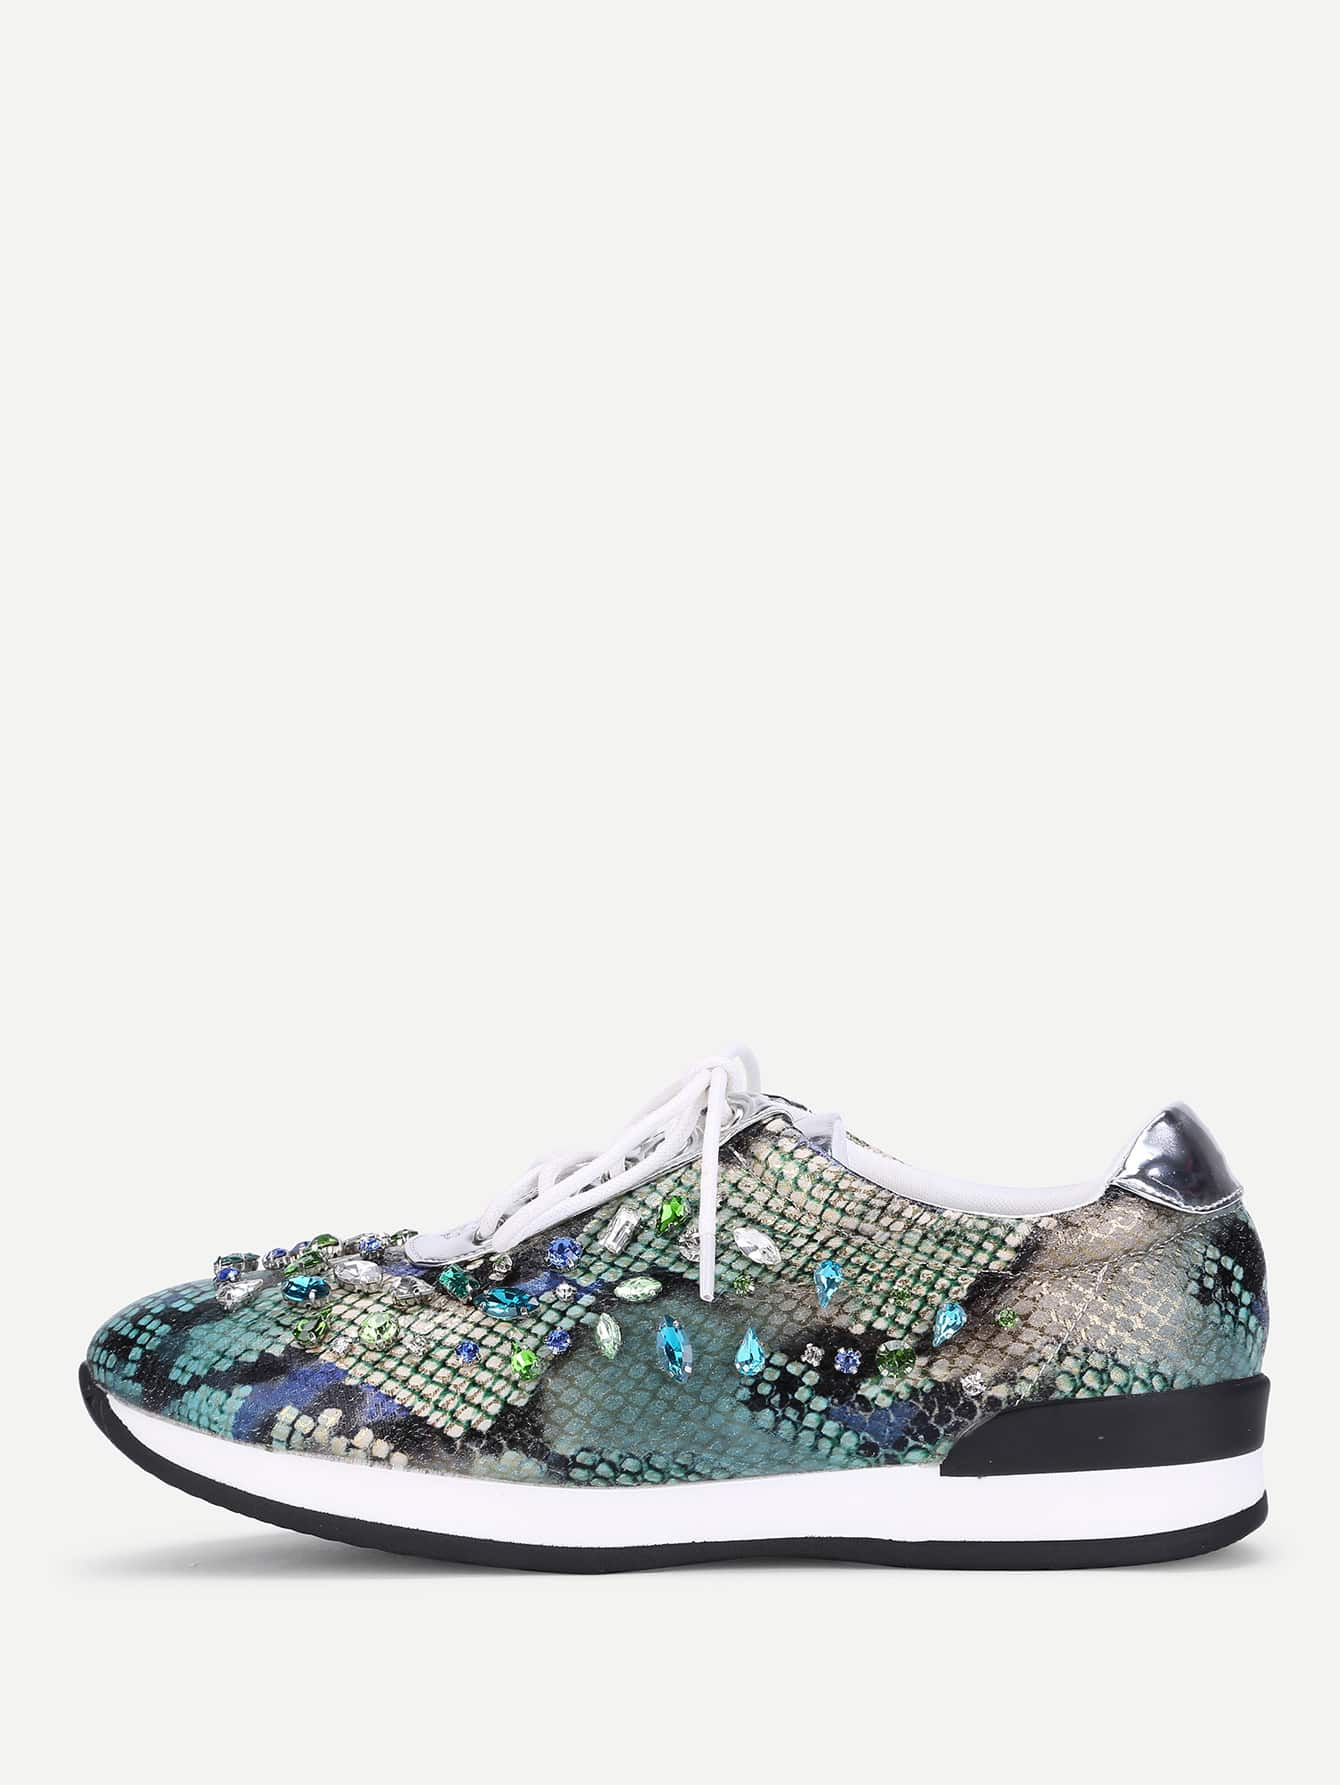 Rhinestone Decorated Lace Up Sneakers st decorated up